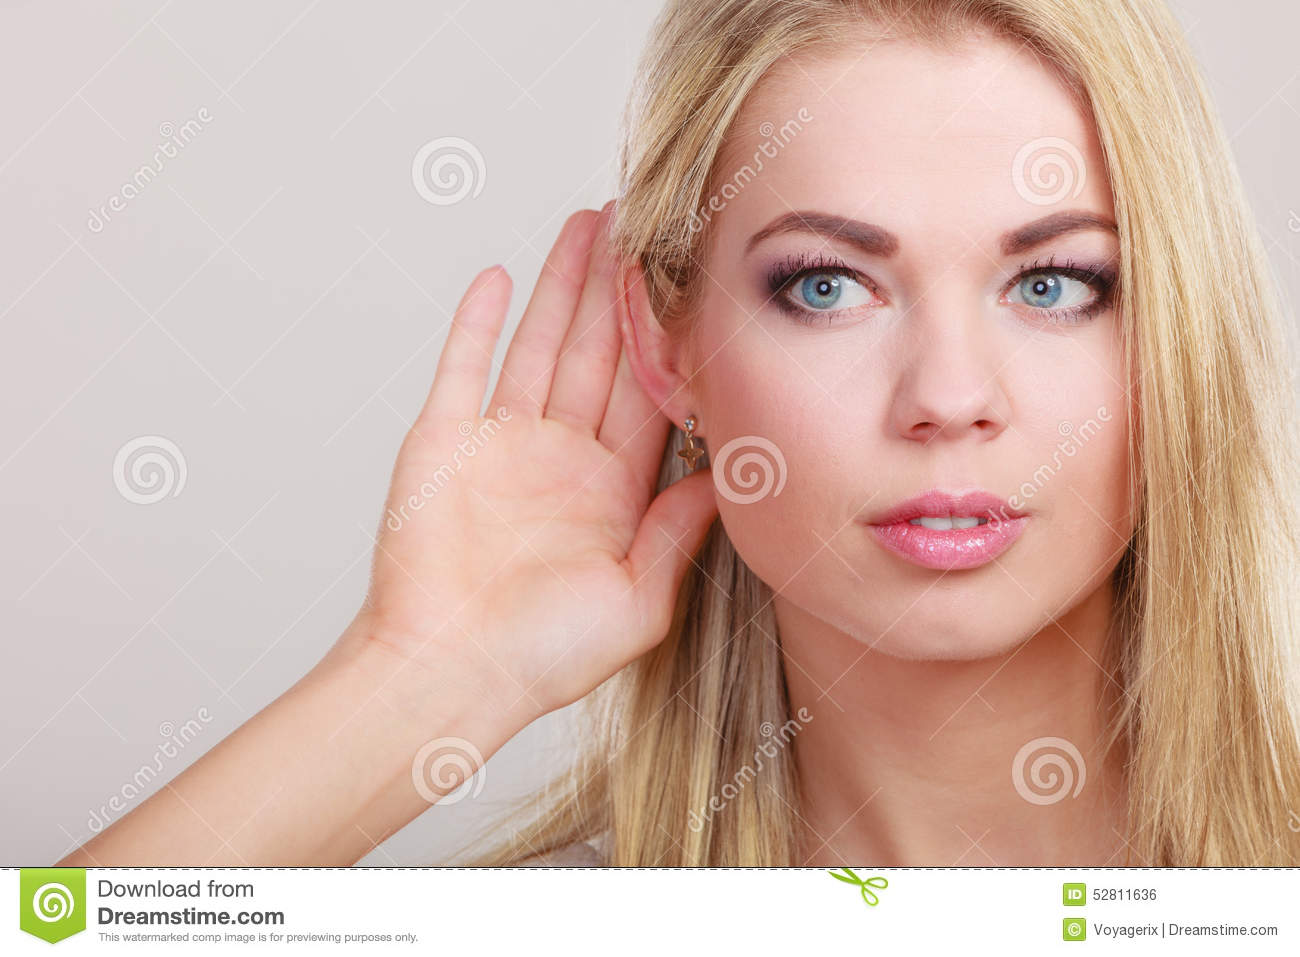 Gossip girl with hand behind ear spying